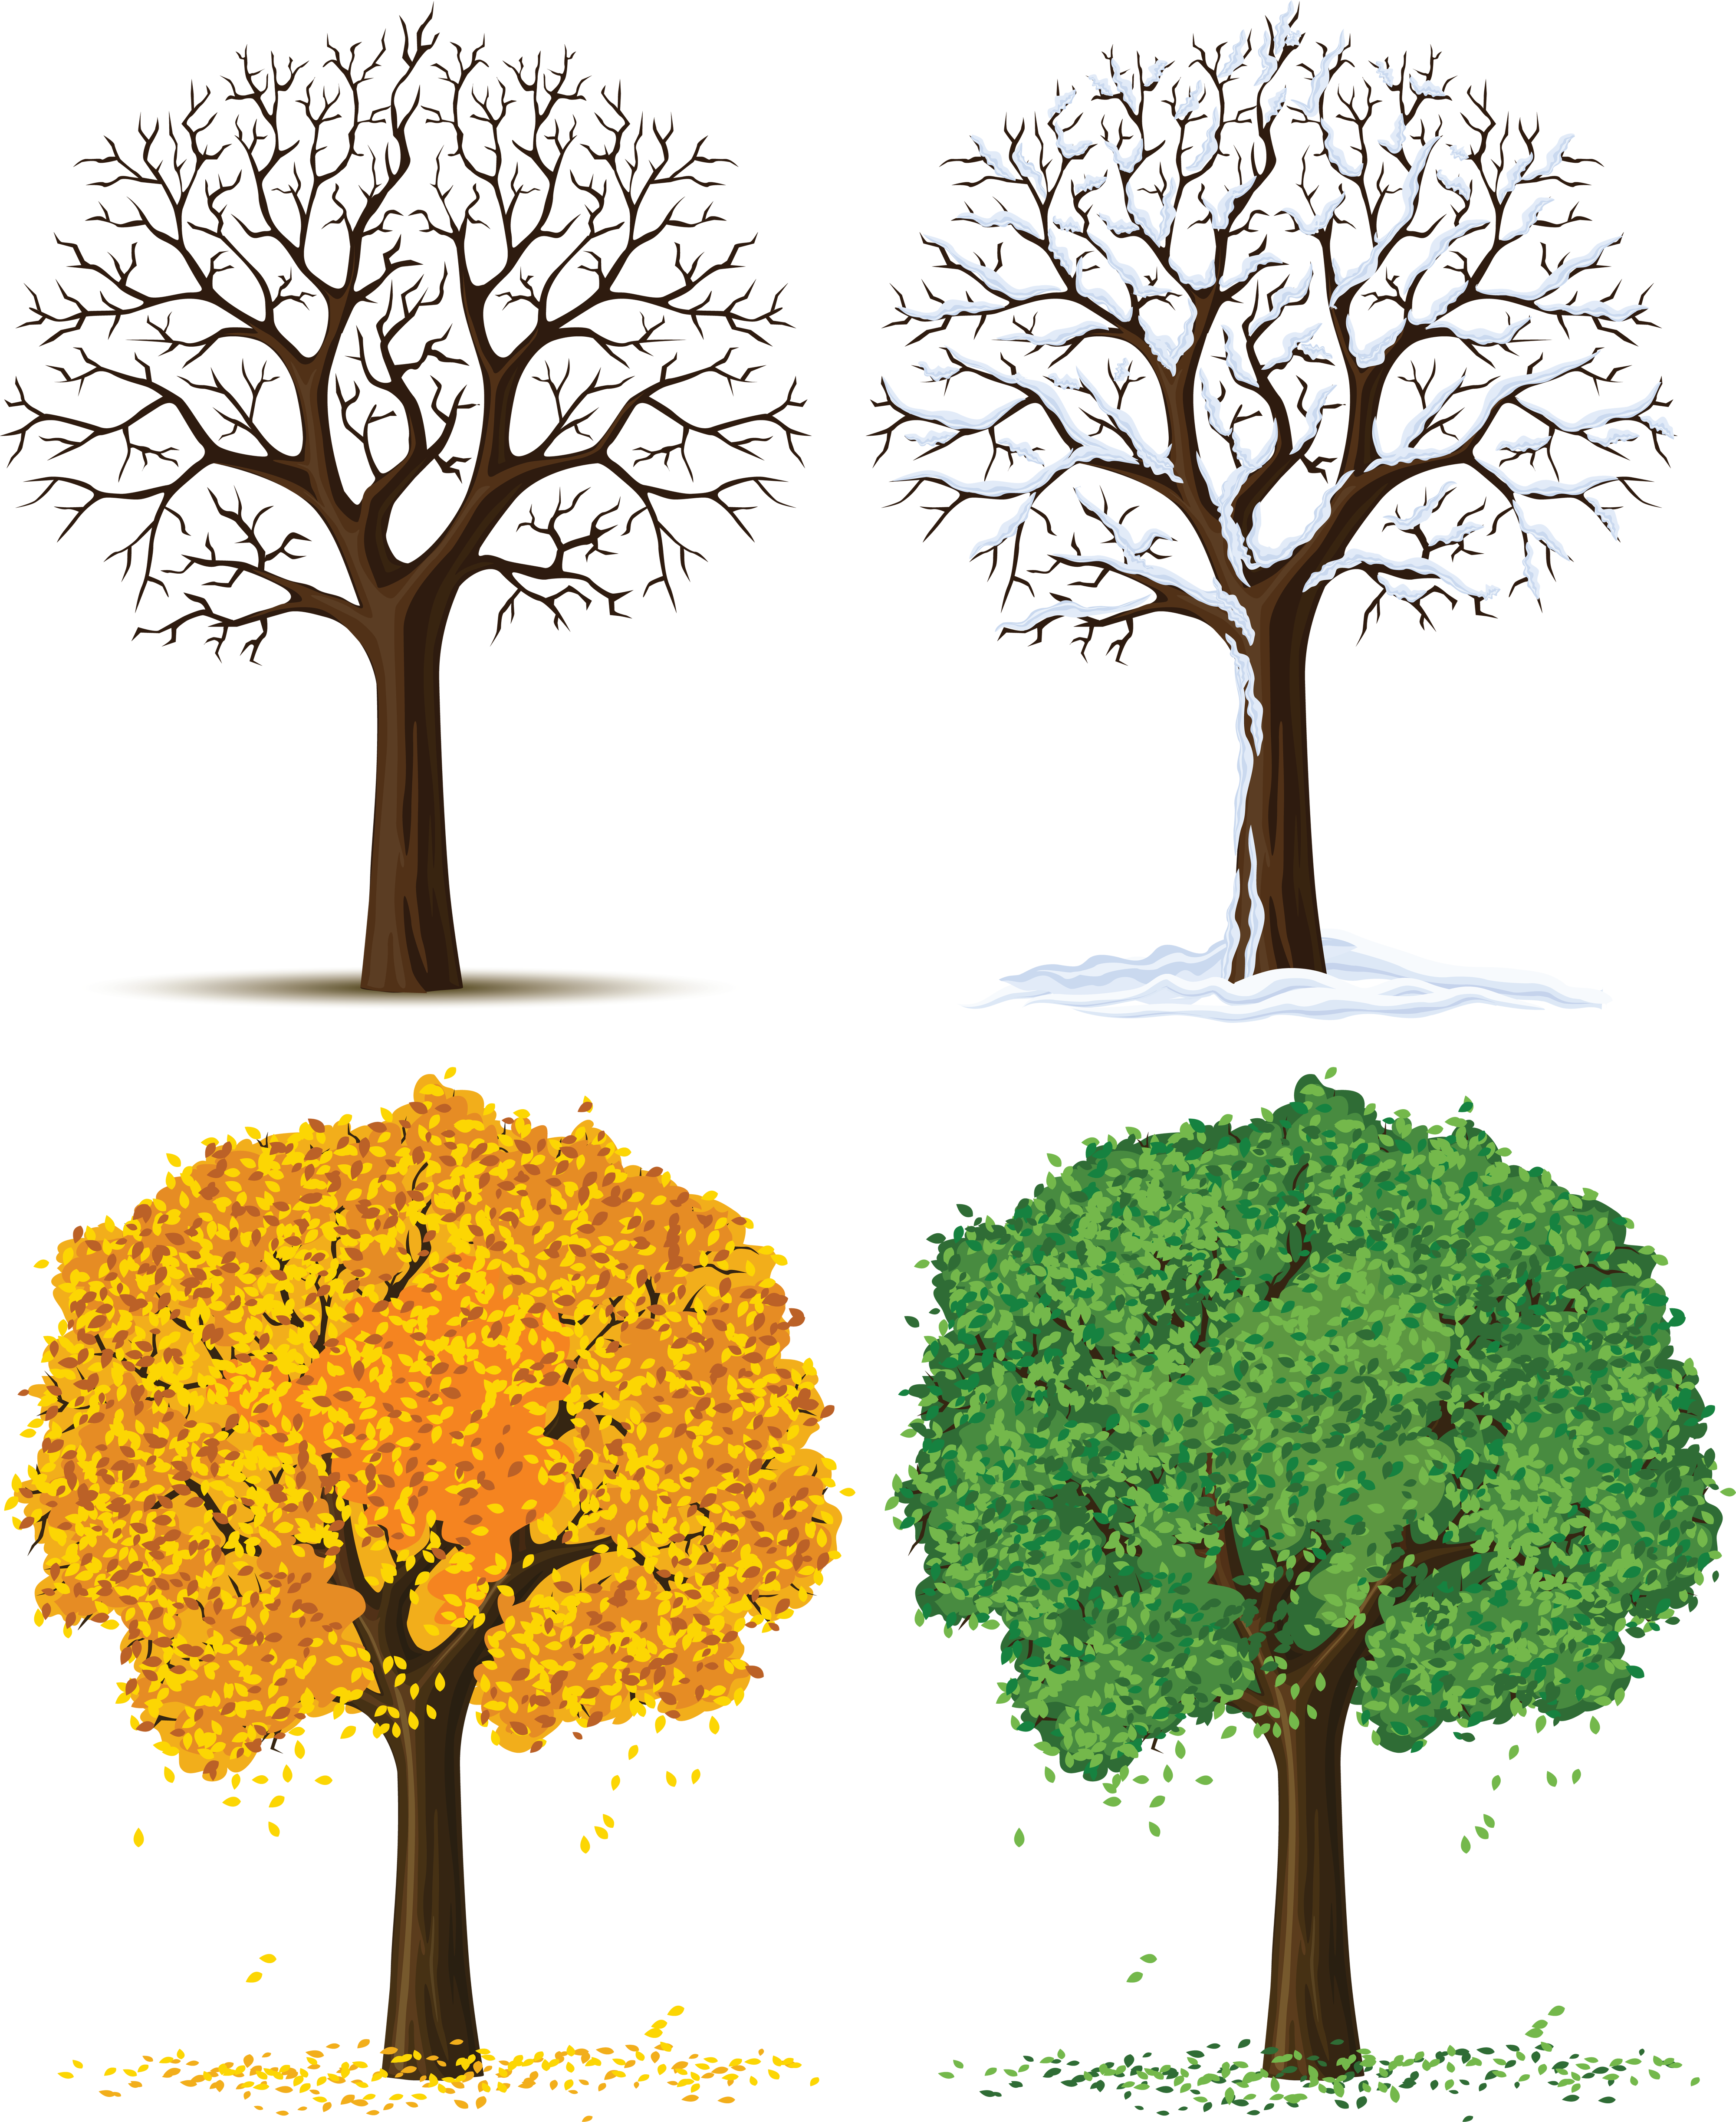 Season tree clipart clip black and white stock Tree with seasons clipart - ClipartFest clip black and white stock